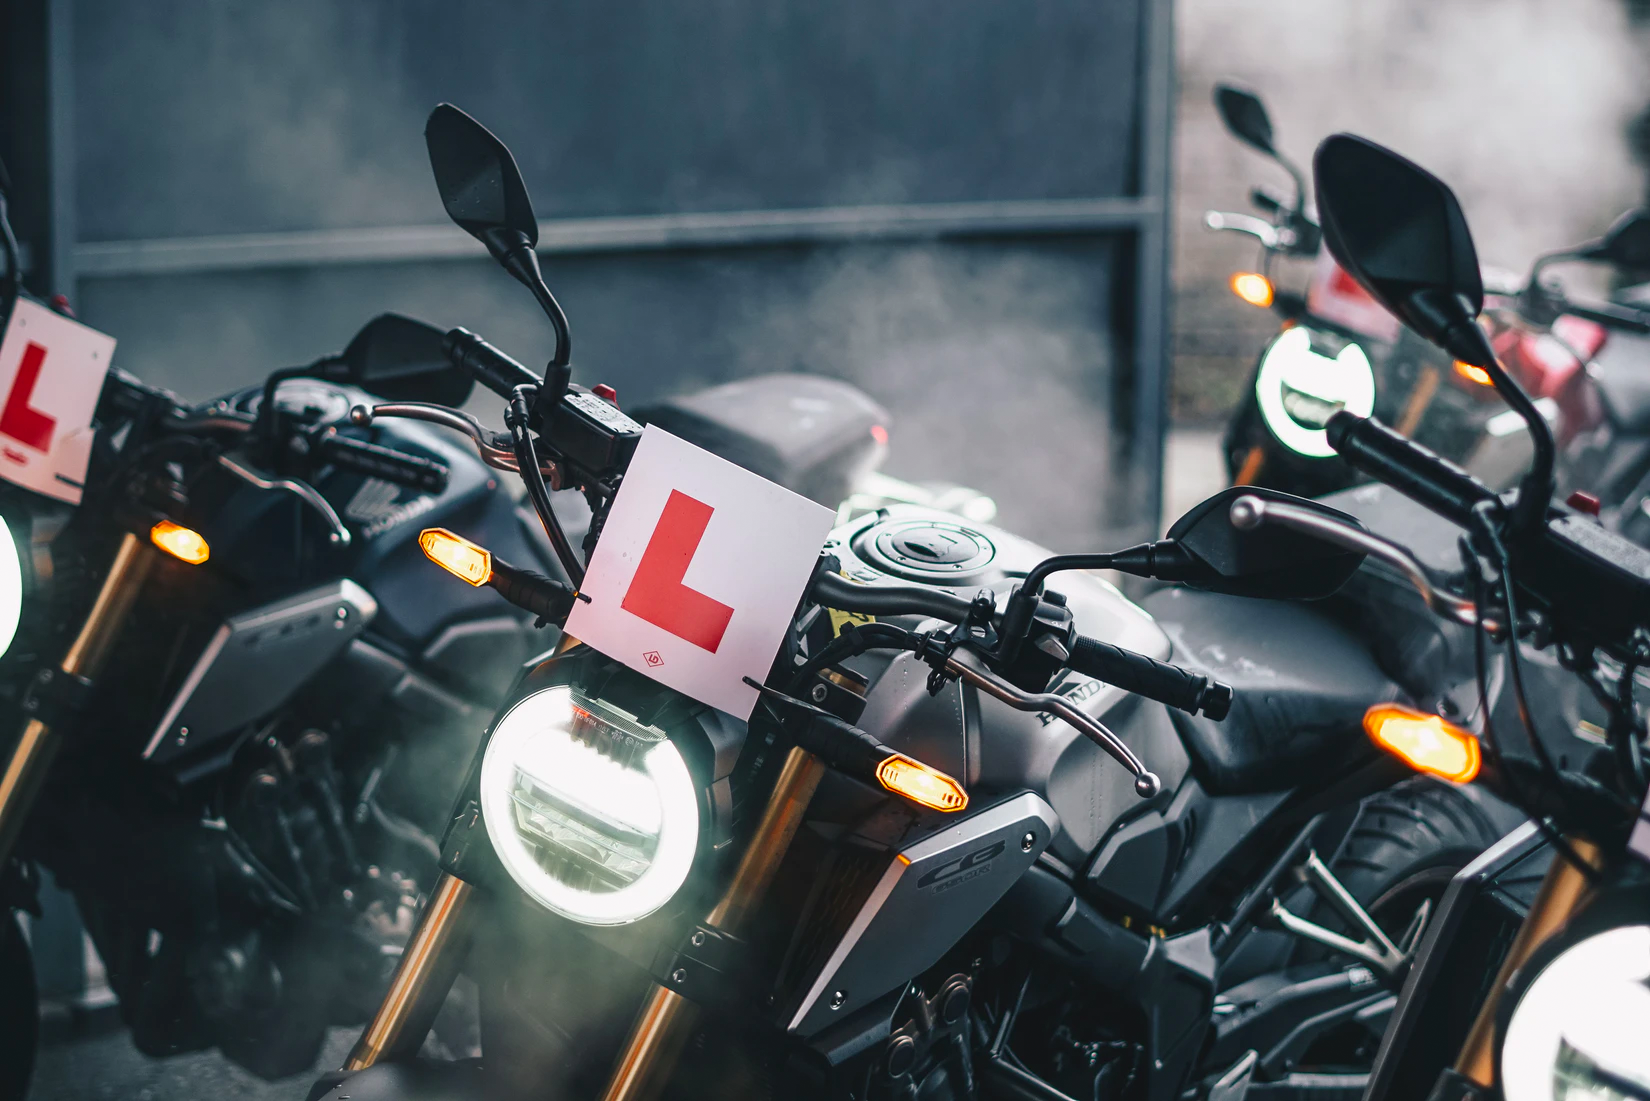 Crucial Tips to Use When Buying Your First Motorcycle Ideal Type - Crucial Tips to Use When Buying Your First Motorcycle